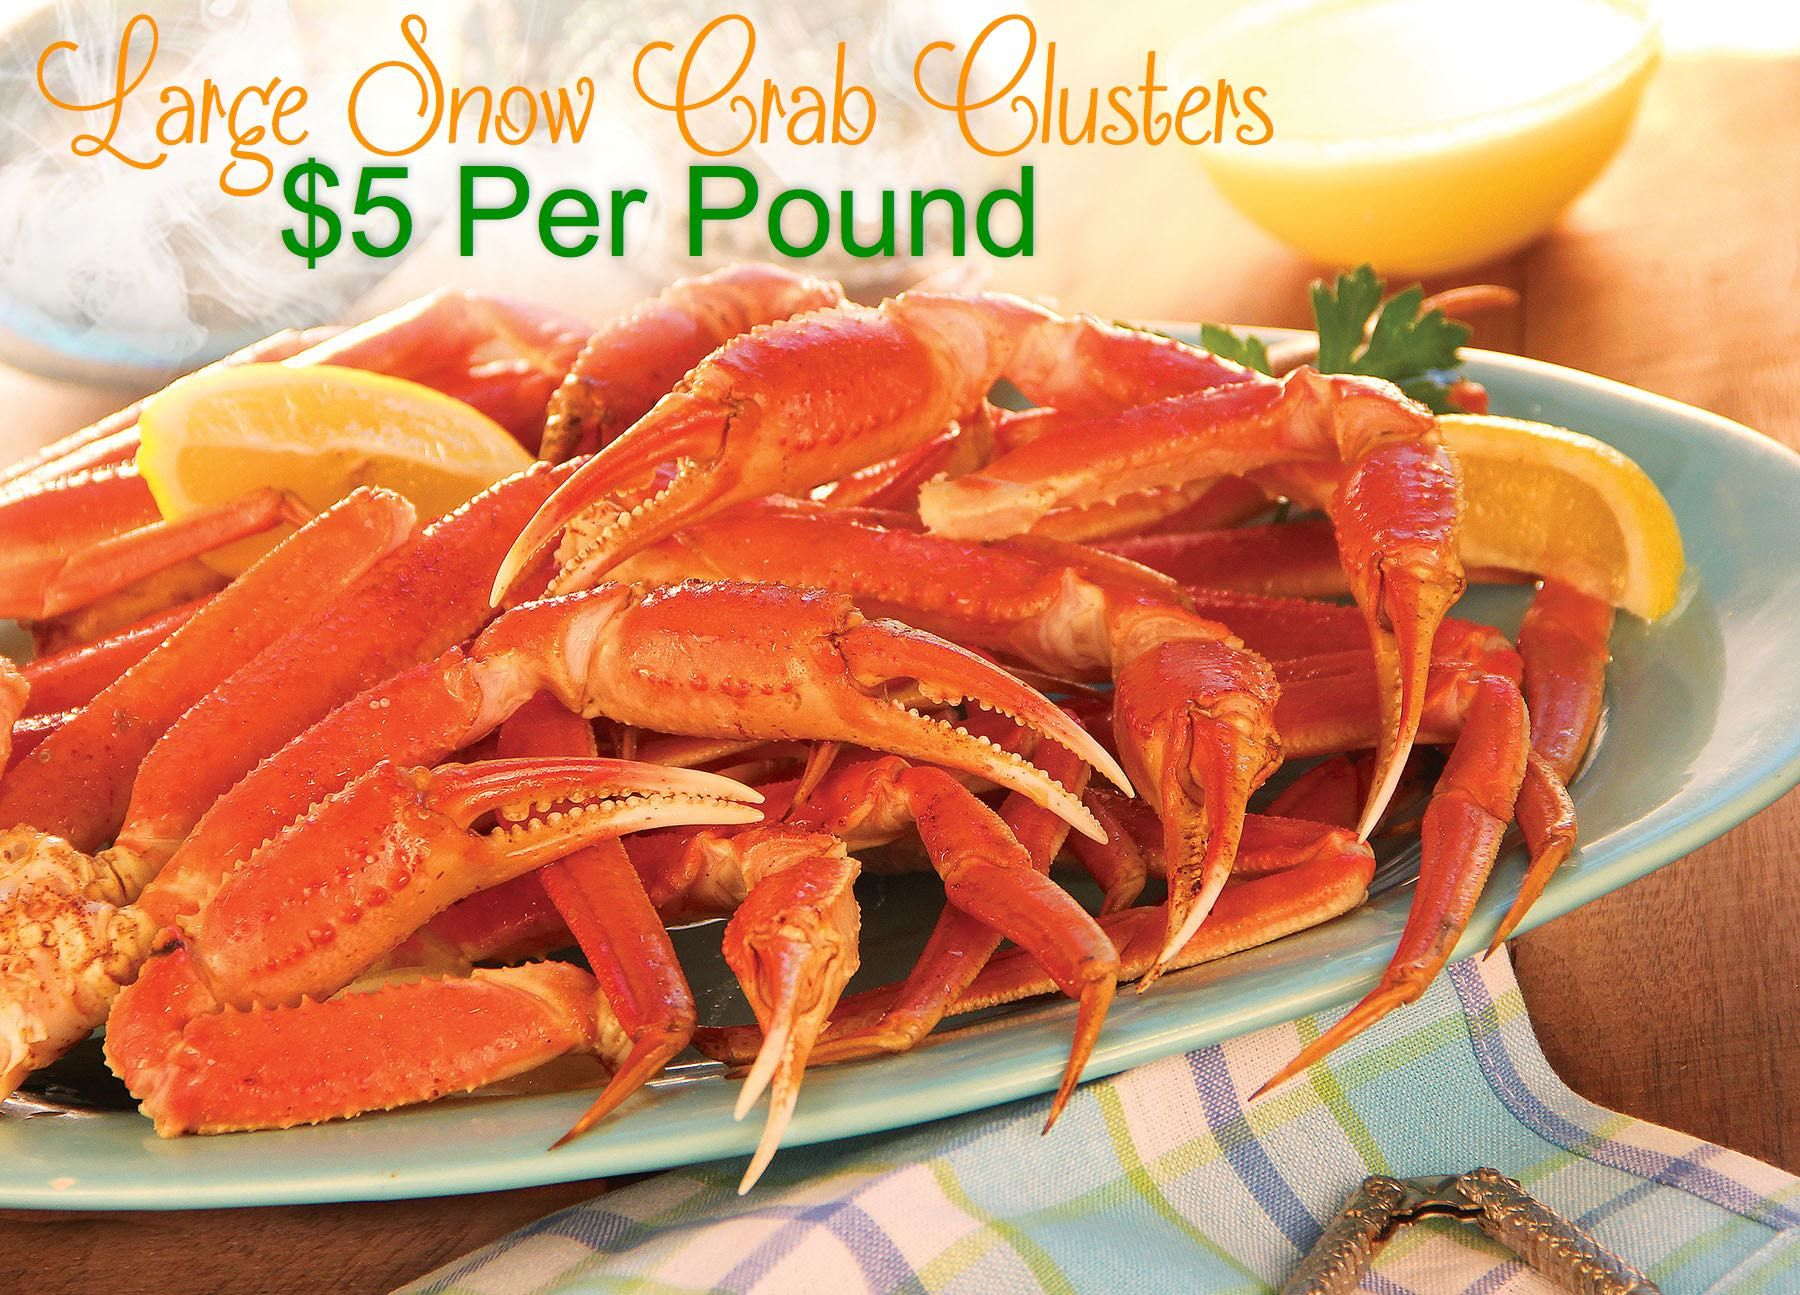 winn dixie large snow crab clusters 5 per pound with 30